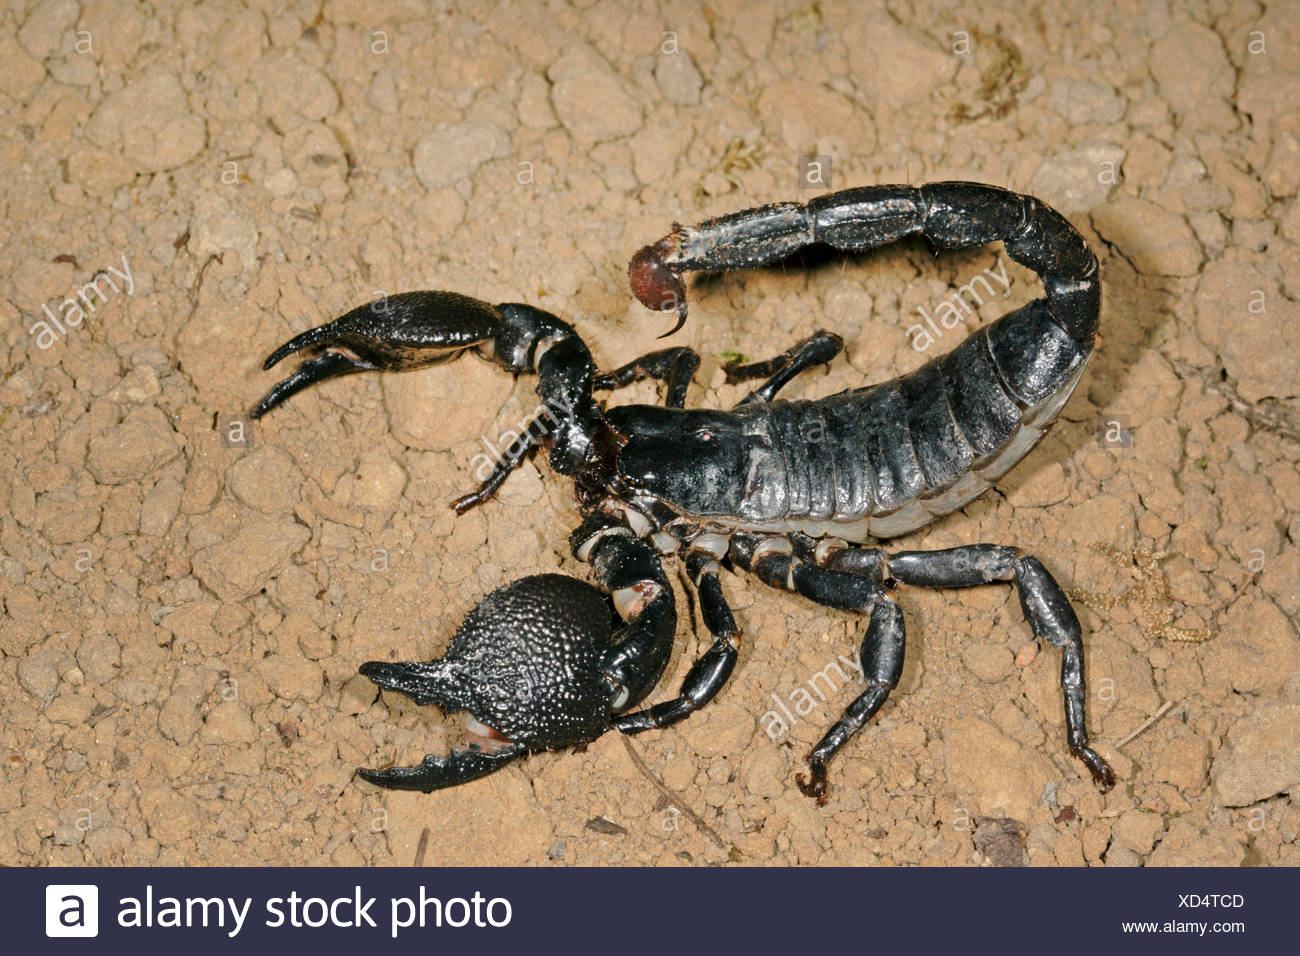 the pandinus imperator a k a emperor Emperor scorpions pandinus imperator have long been one of the easiest, and most popular arachnids to keep in captivity their acclaim existed even before they made their large screen debut in the wildly popular universal pictures movie, the scorpion king.